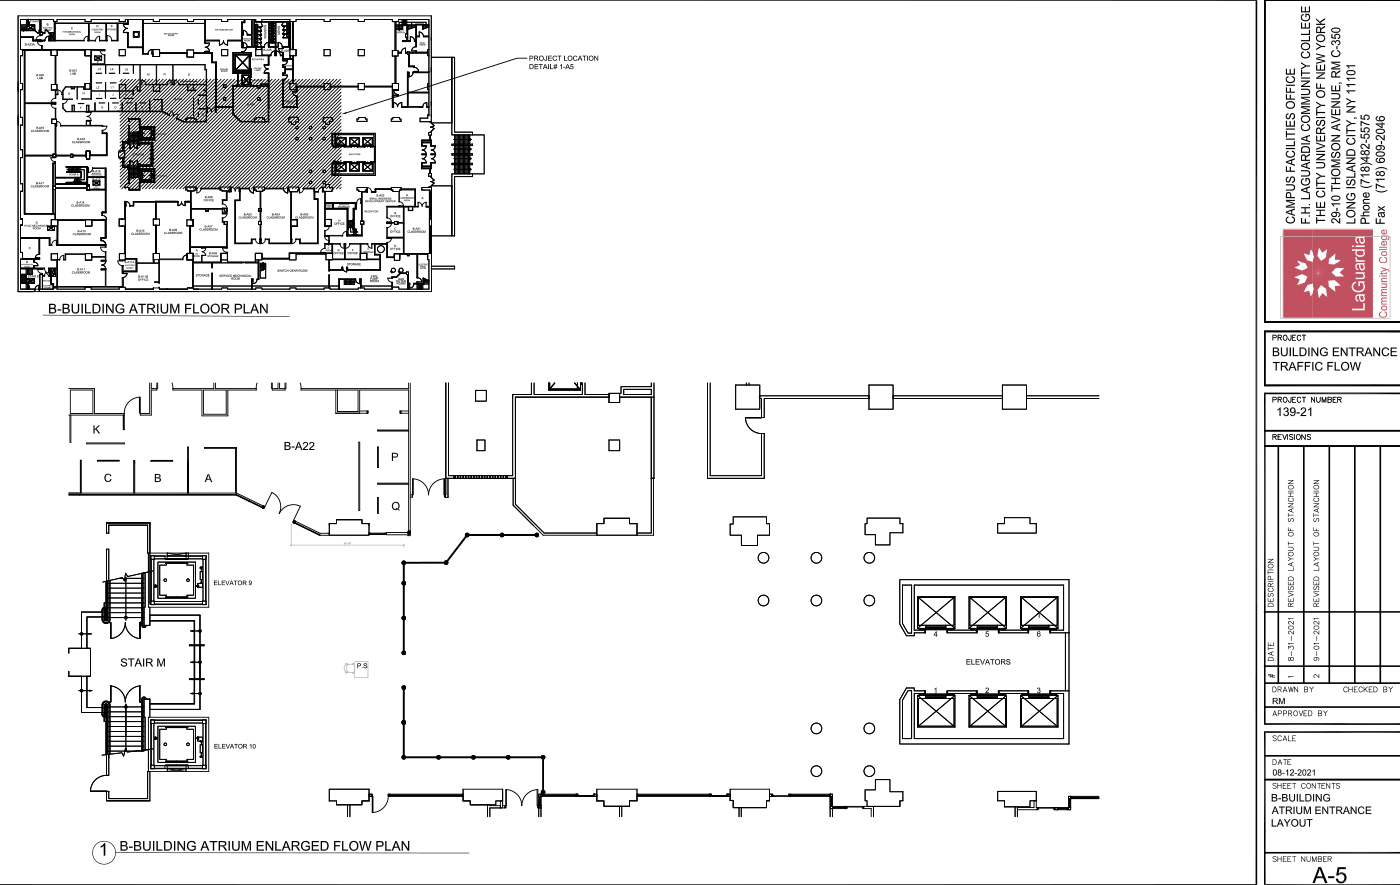 LaGuardia's campus facilities office_center III 2nd floor computer lab layout